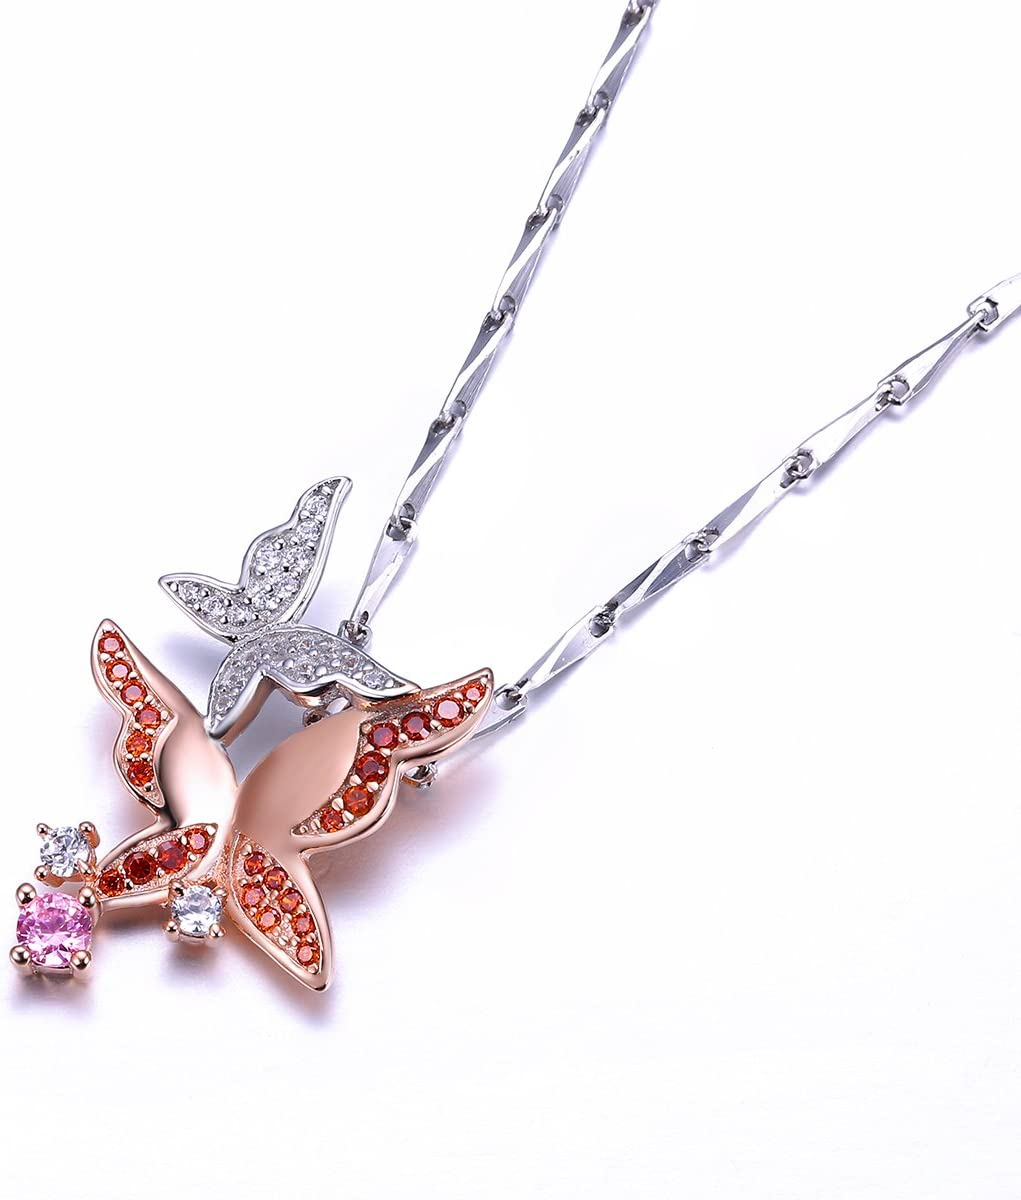 PAKULA 925 Sterling Silver Women 2 Tone Dainty Butterfly Charms Pendant Necklace Chain 18 Inch